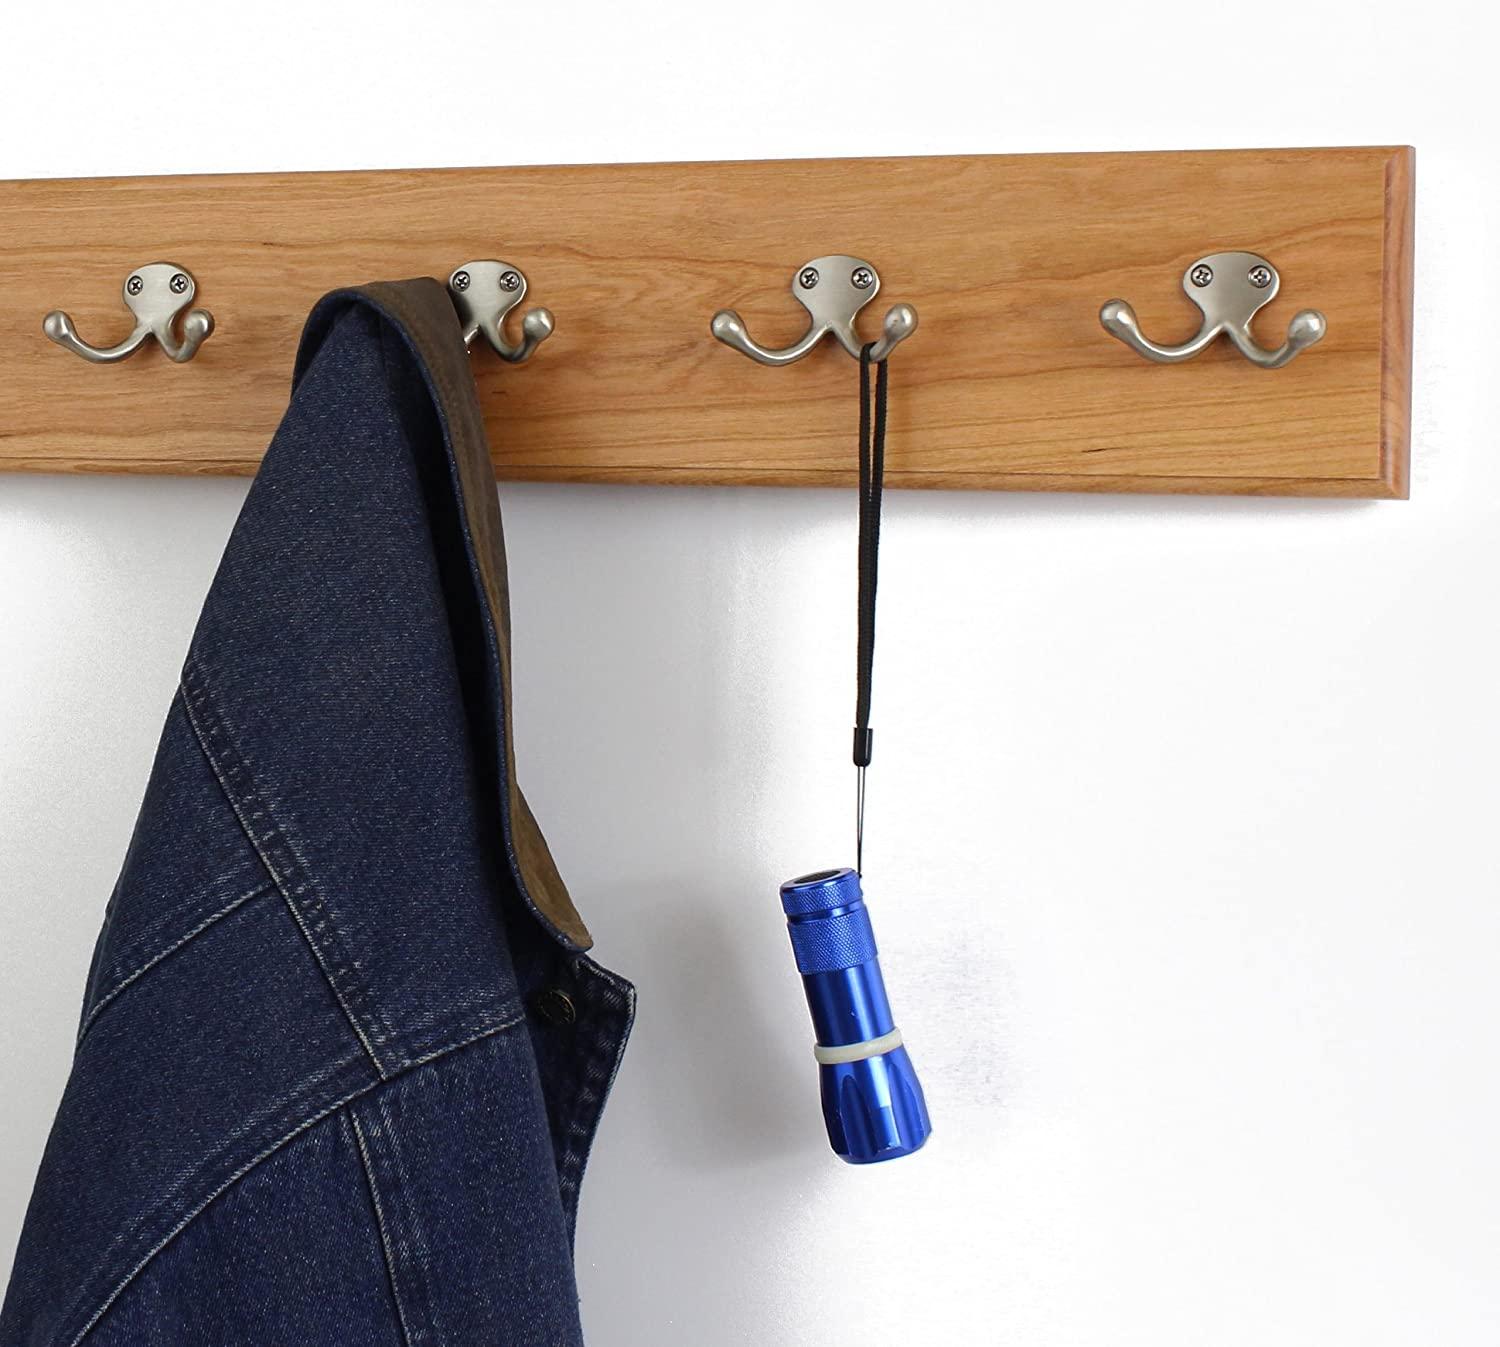 PegandRail Cherry Max 78% OFF Coat Rack with Double Style 2021 autumn and winter new Hooks Nickle Satin